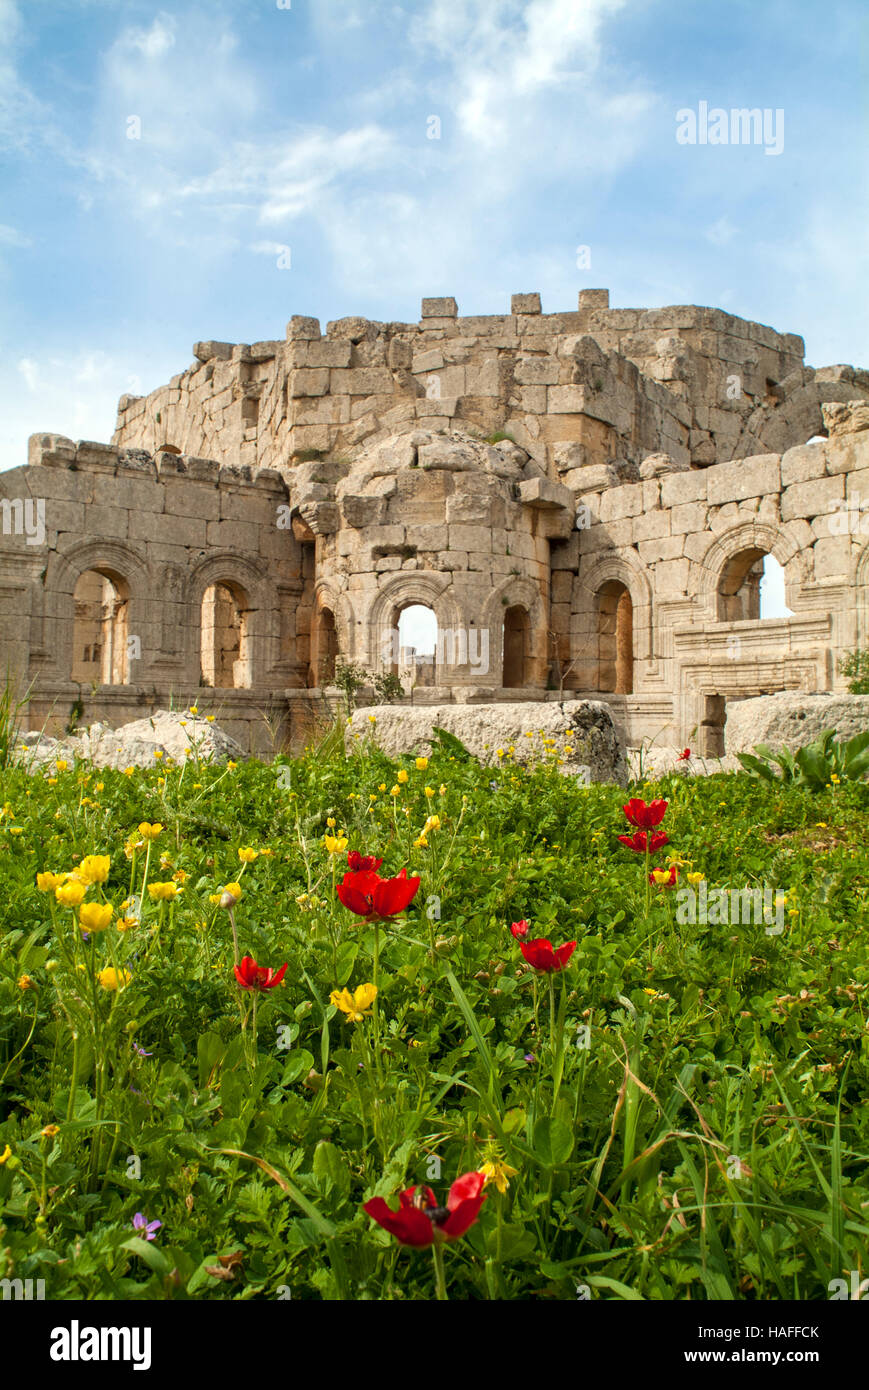 The ruins at the Church of Saint Simeon Stylites, built in the the 5th century AD, before the Syrian civil war. - Stock Image